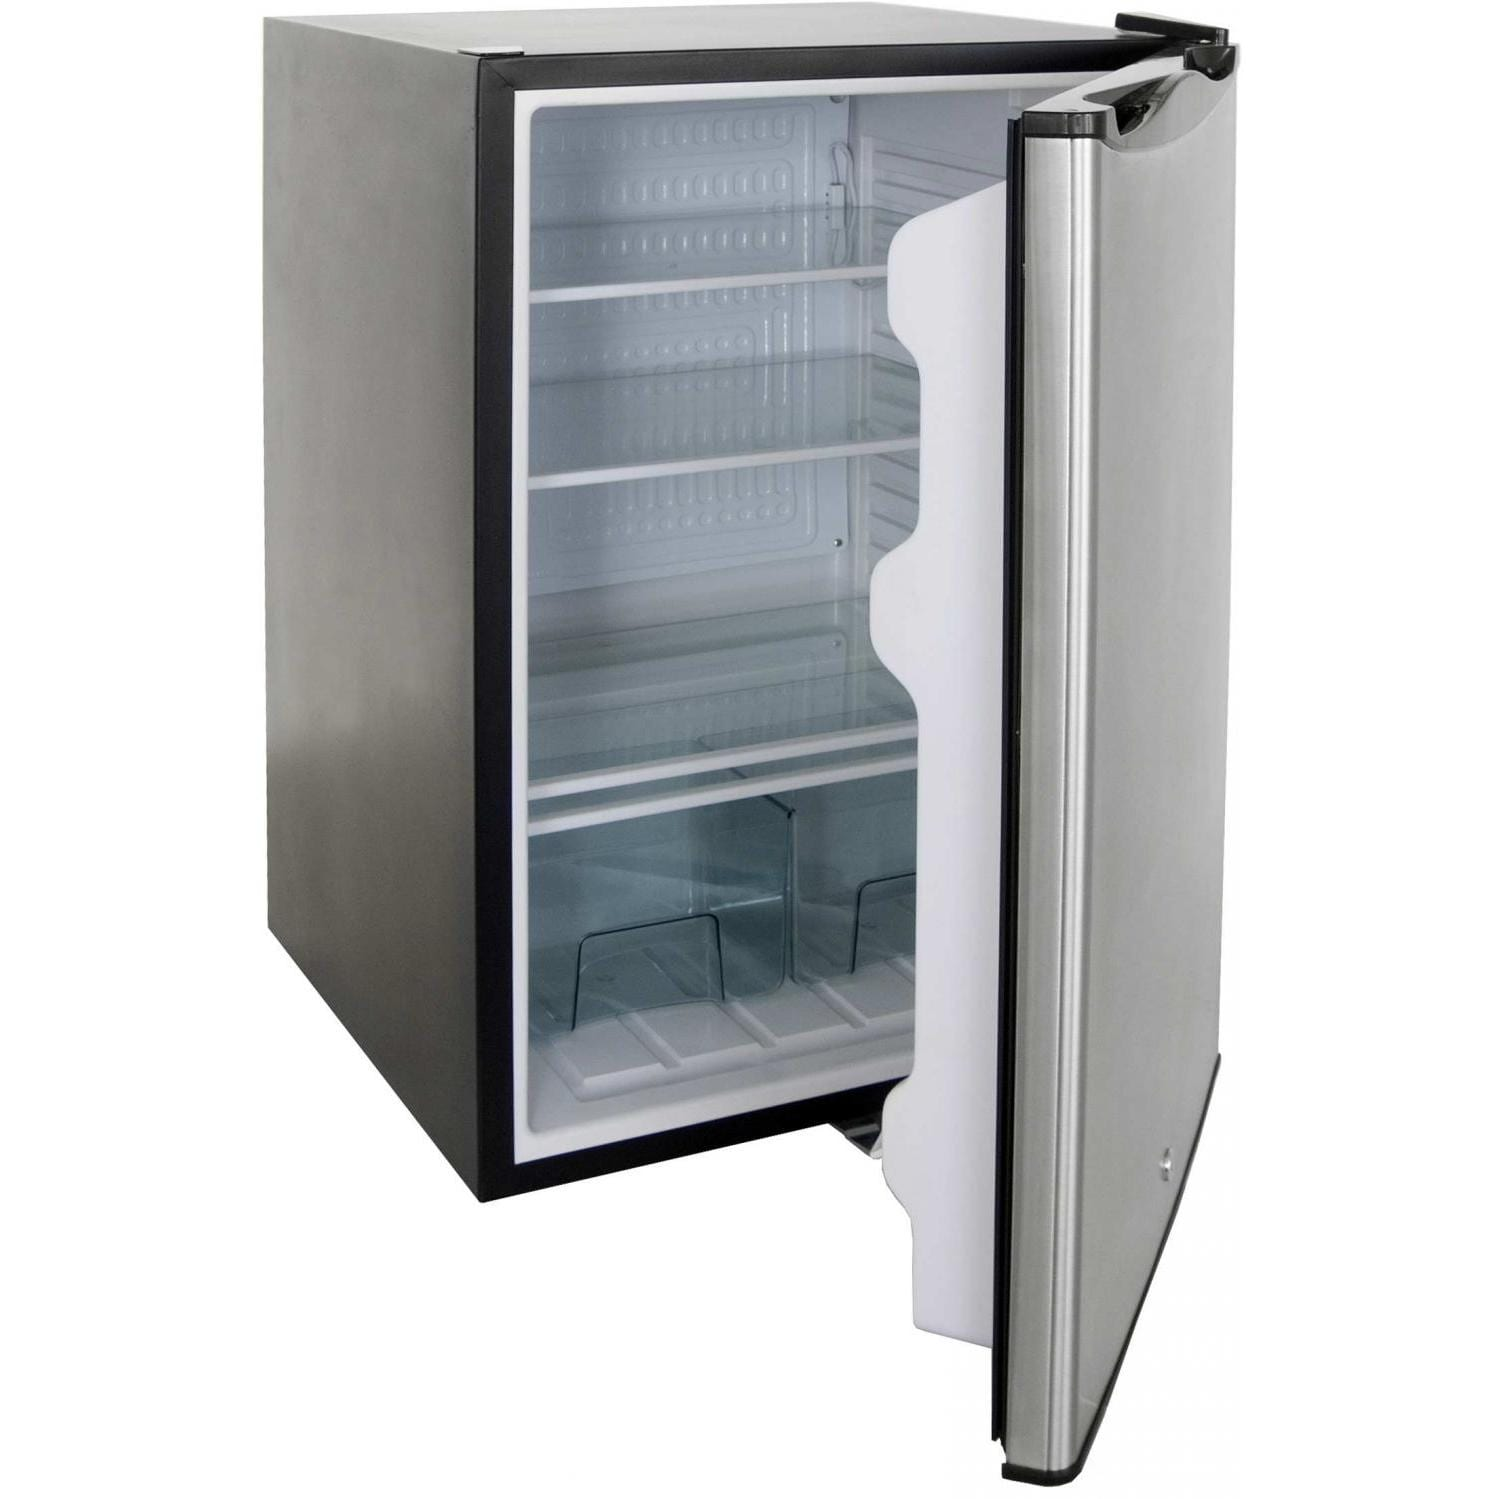 Rcs 21 Inch 4 5 Cu Ft Outdoor Compact Refrigerator With Recessed Handle Stainless Steel Refr1a